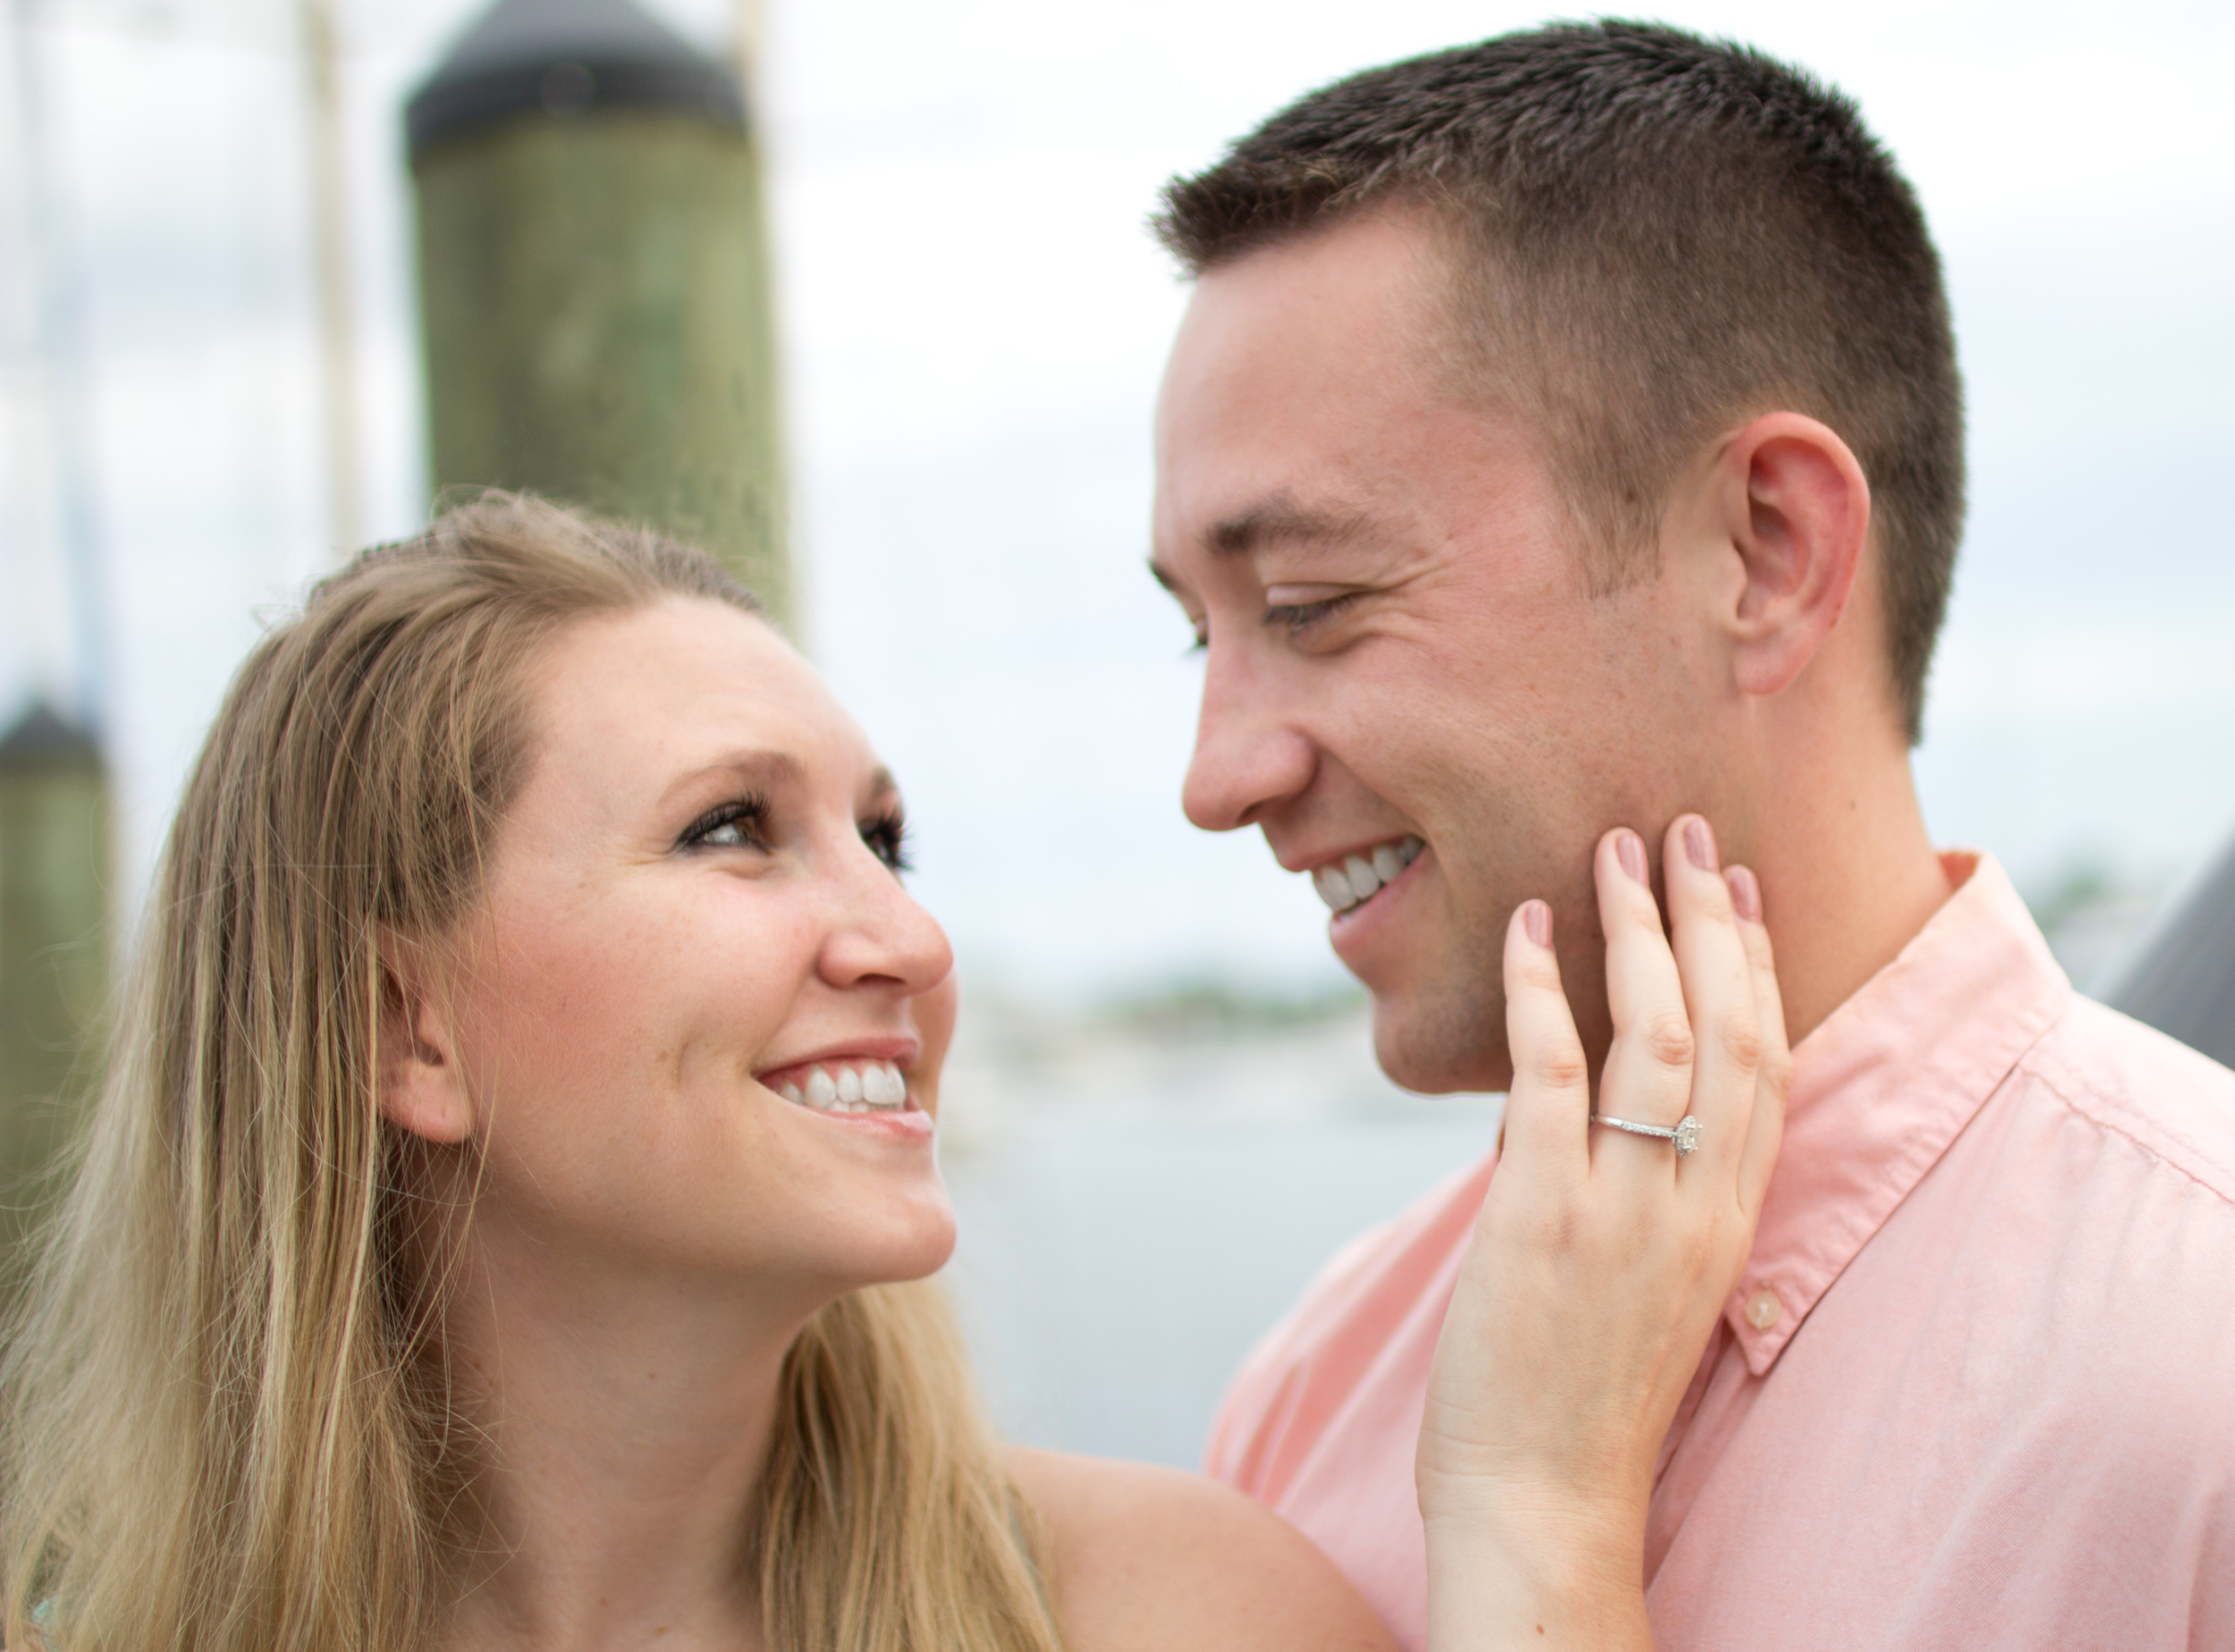 Baltimore_Couples_Photography_Brandon_C_Photo-1.jpg